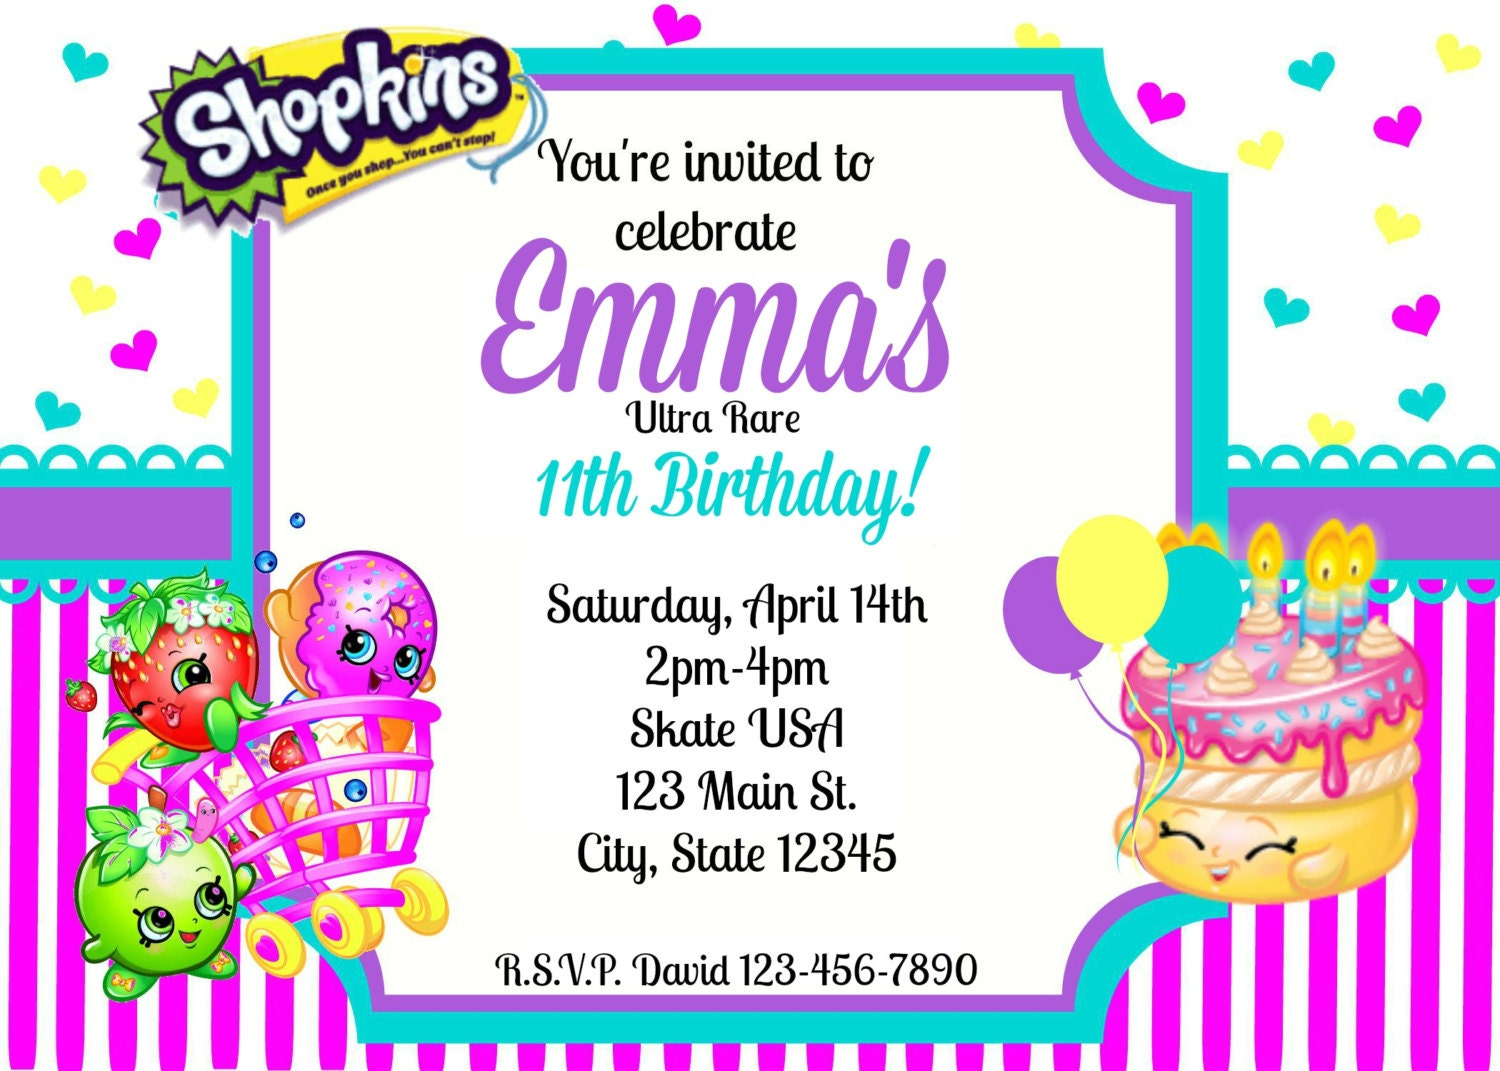 photograph regarding Free Printable Shopkins Invitations referred to as Shopkins Invites Template: Interesting No cost Printable Shopkins